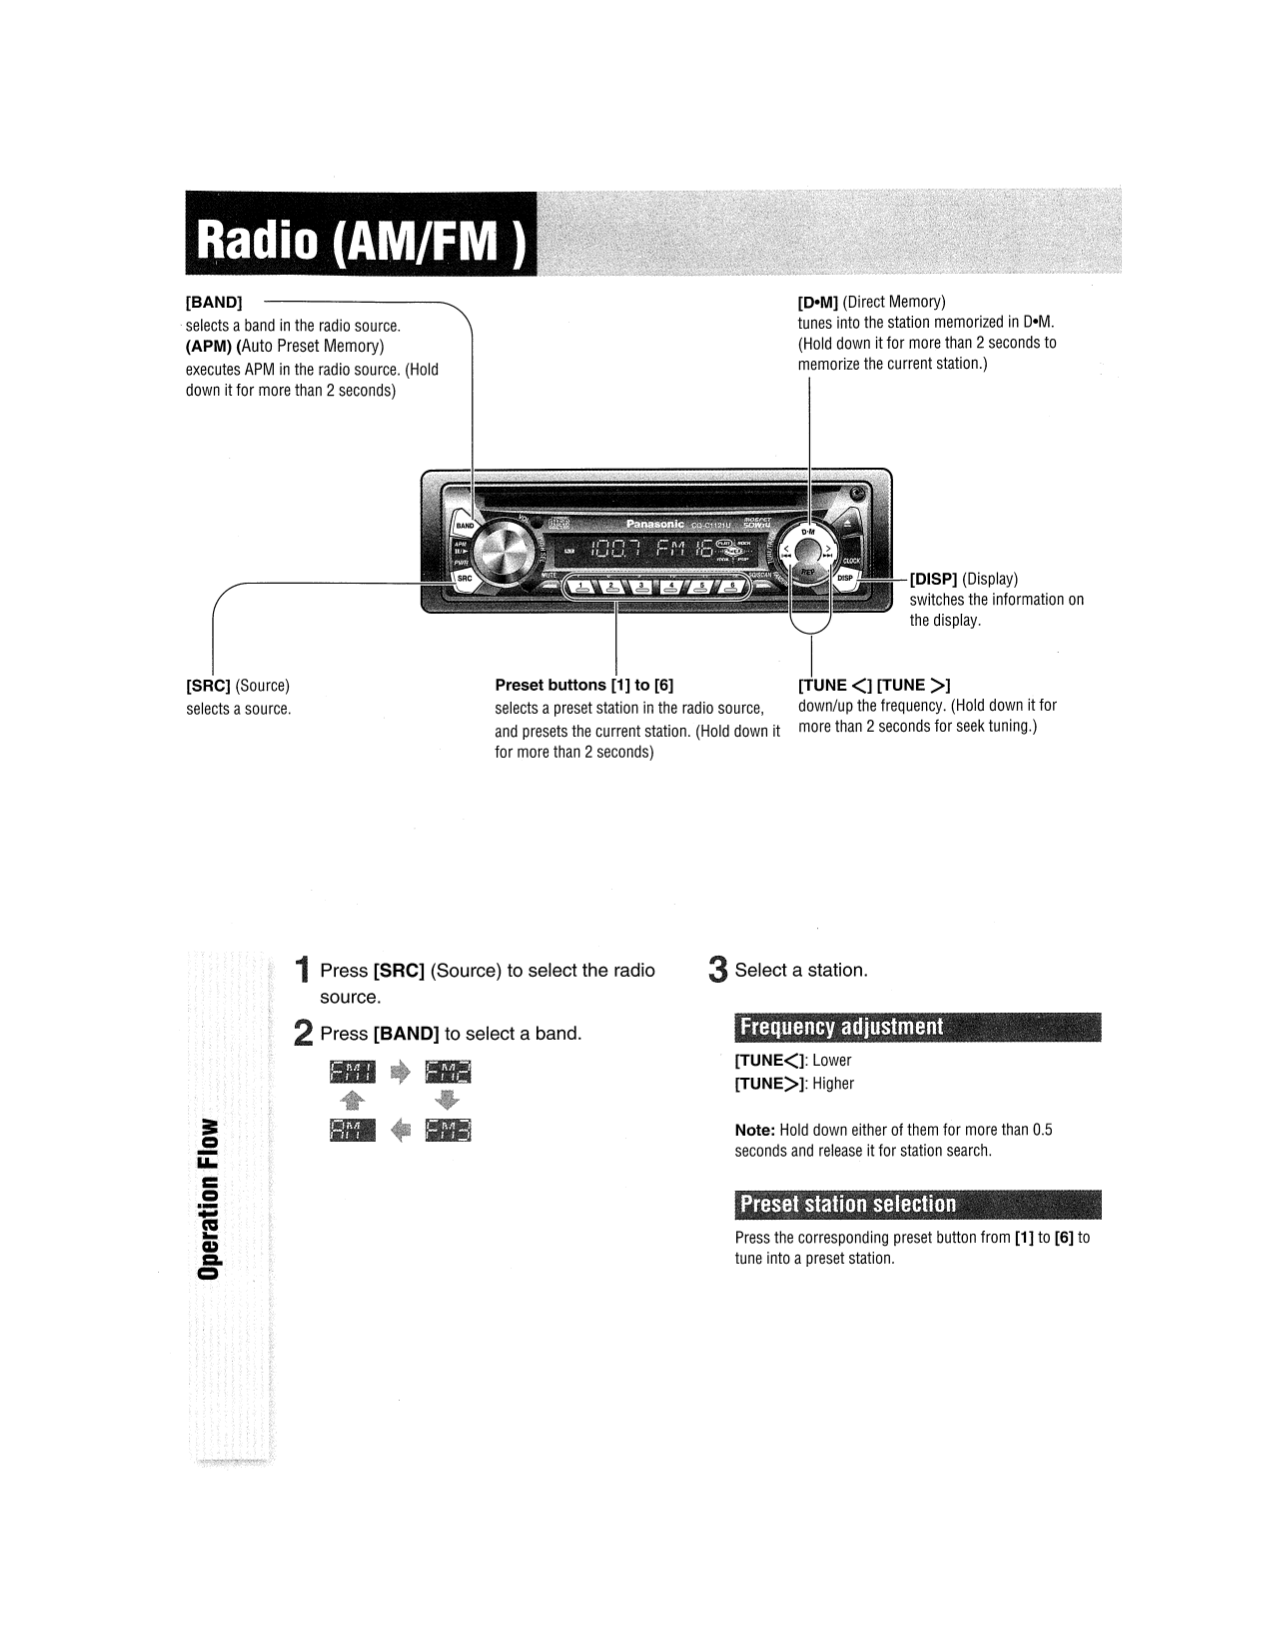 Panasonic Cq C1121u Wiring Diagram Just Another Blog Microwave Diagrams Rh 8 3 Jennifer Retzke De Car Audio Stereo